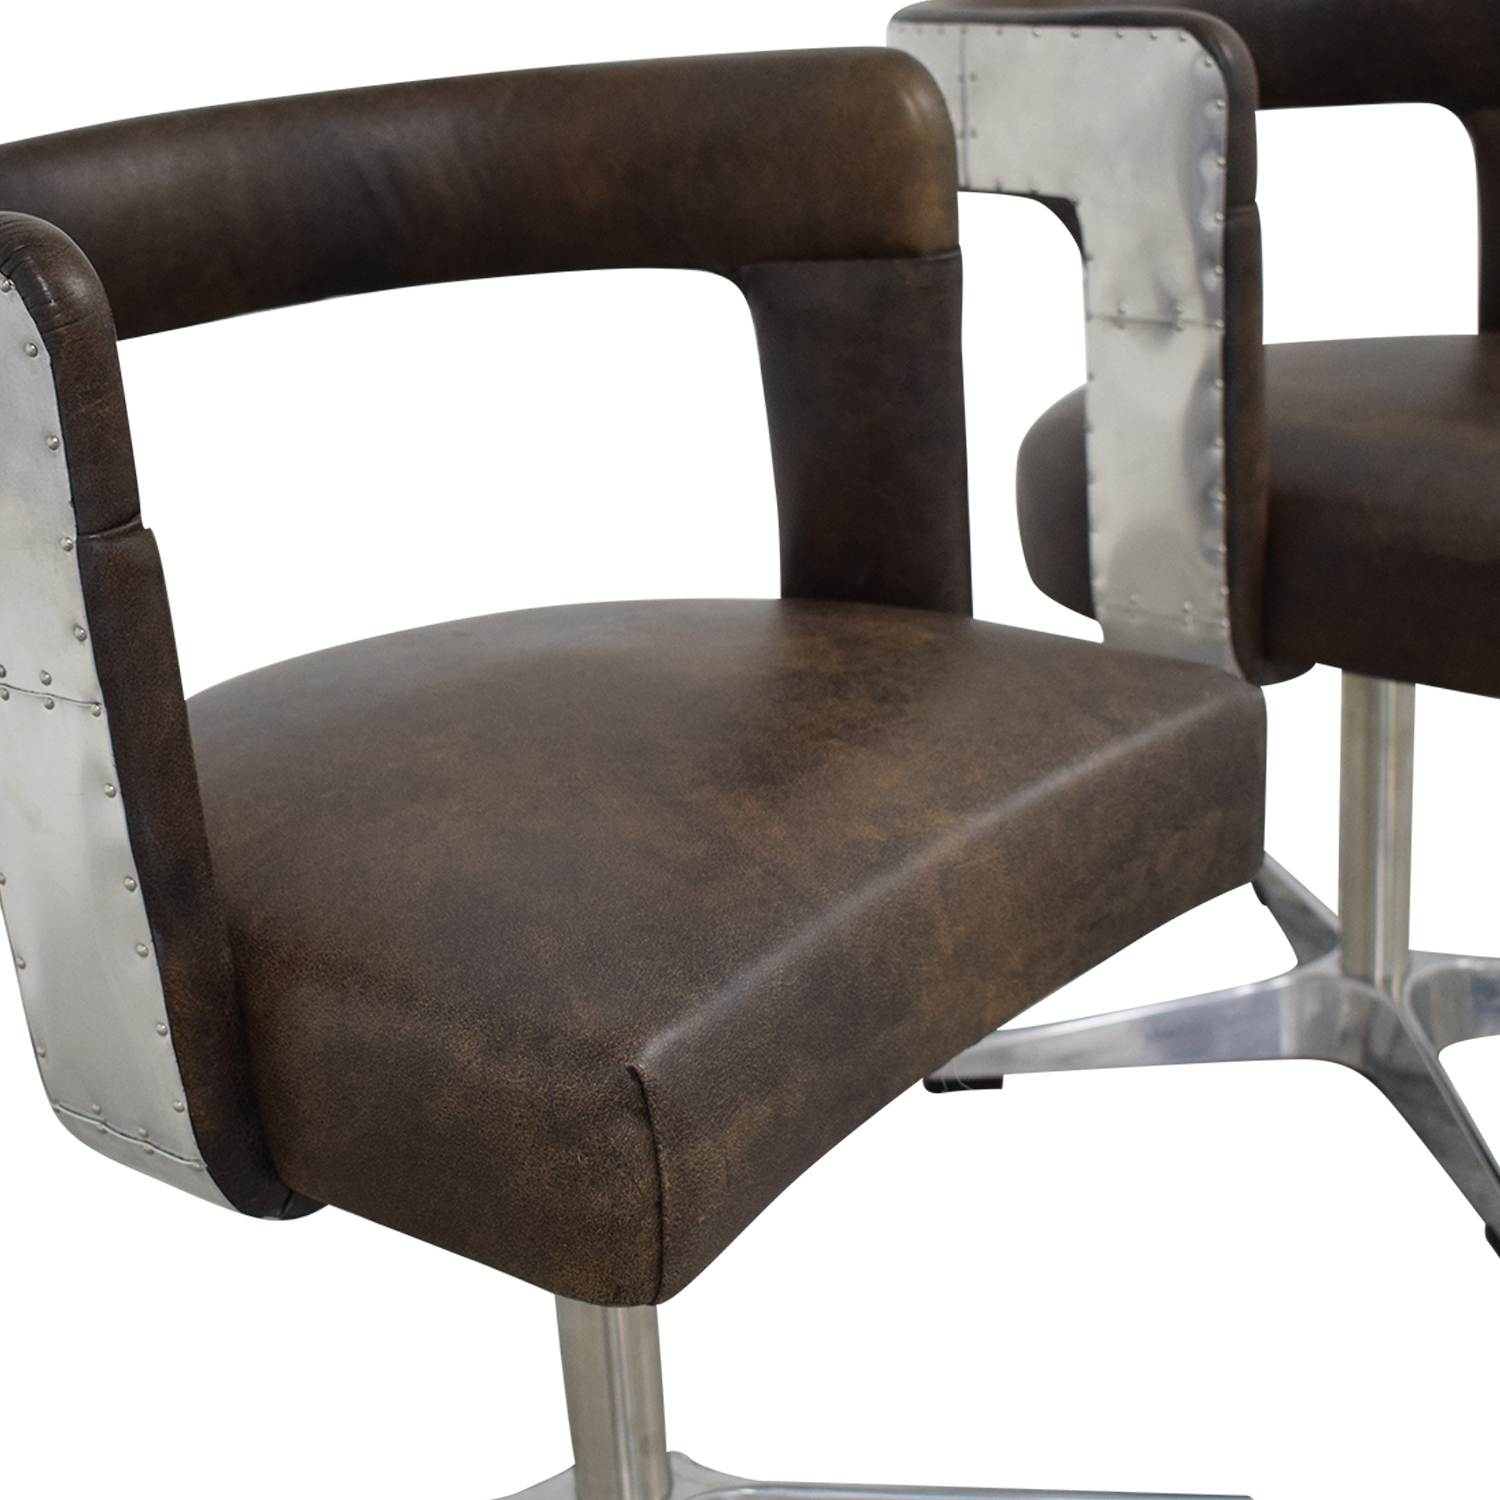 Timothy Oulton Timothy Oulton Circus Dining Chairs for sale